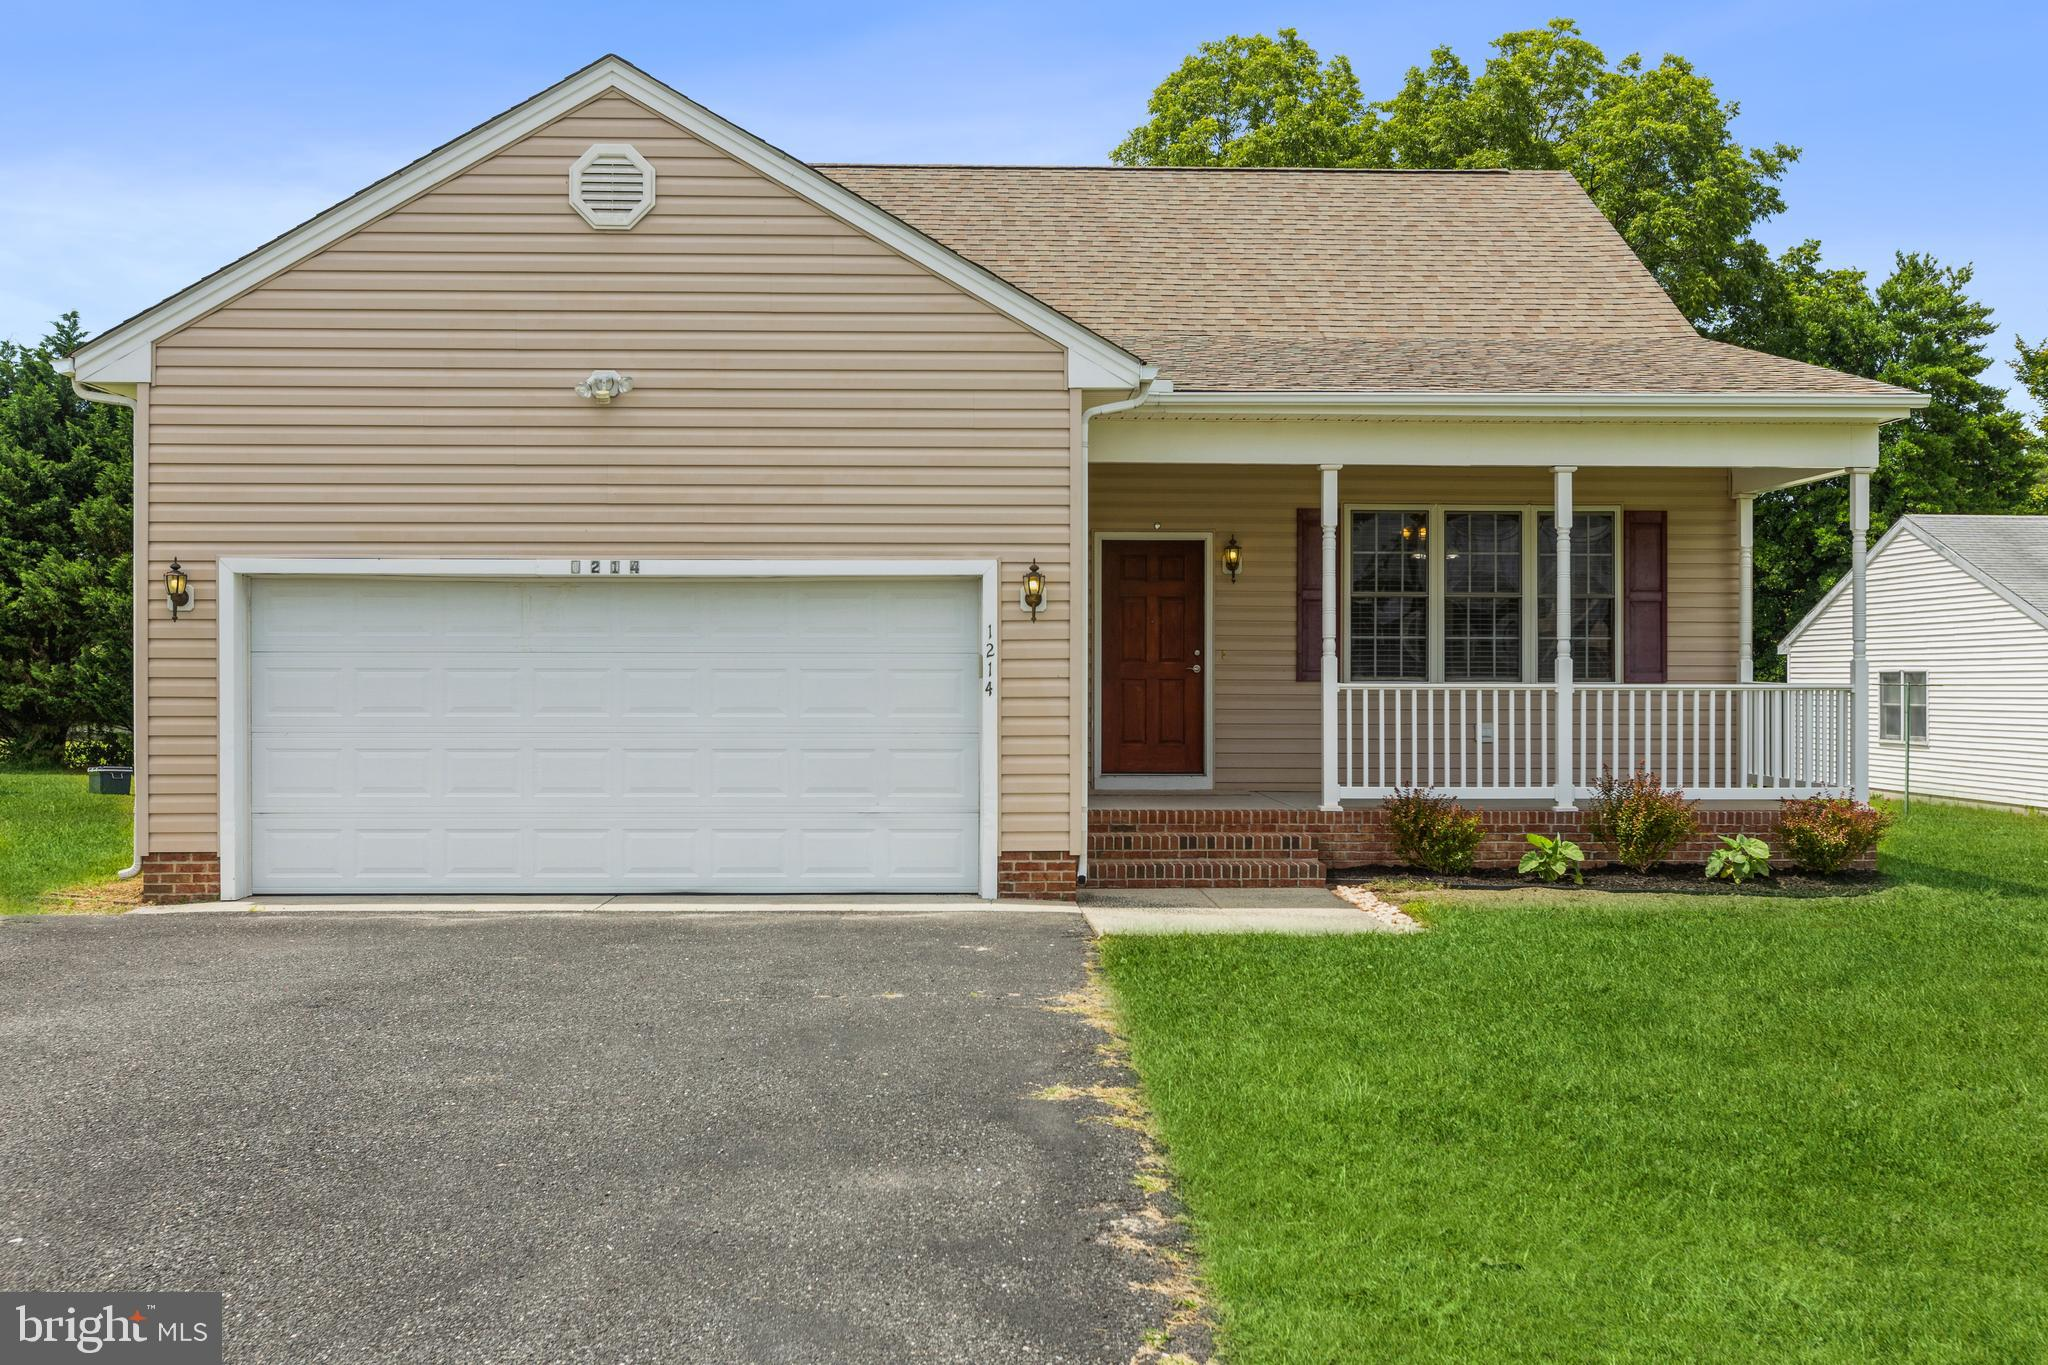 Be prepared to enjoy the benefits of one story living in this 3 bedroom / 2 bathroom home.   Relish